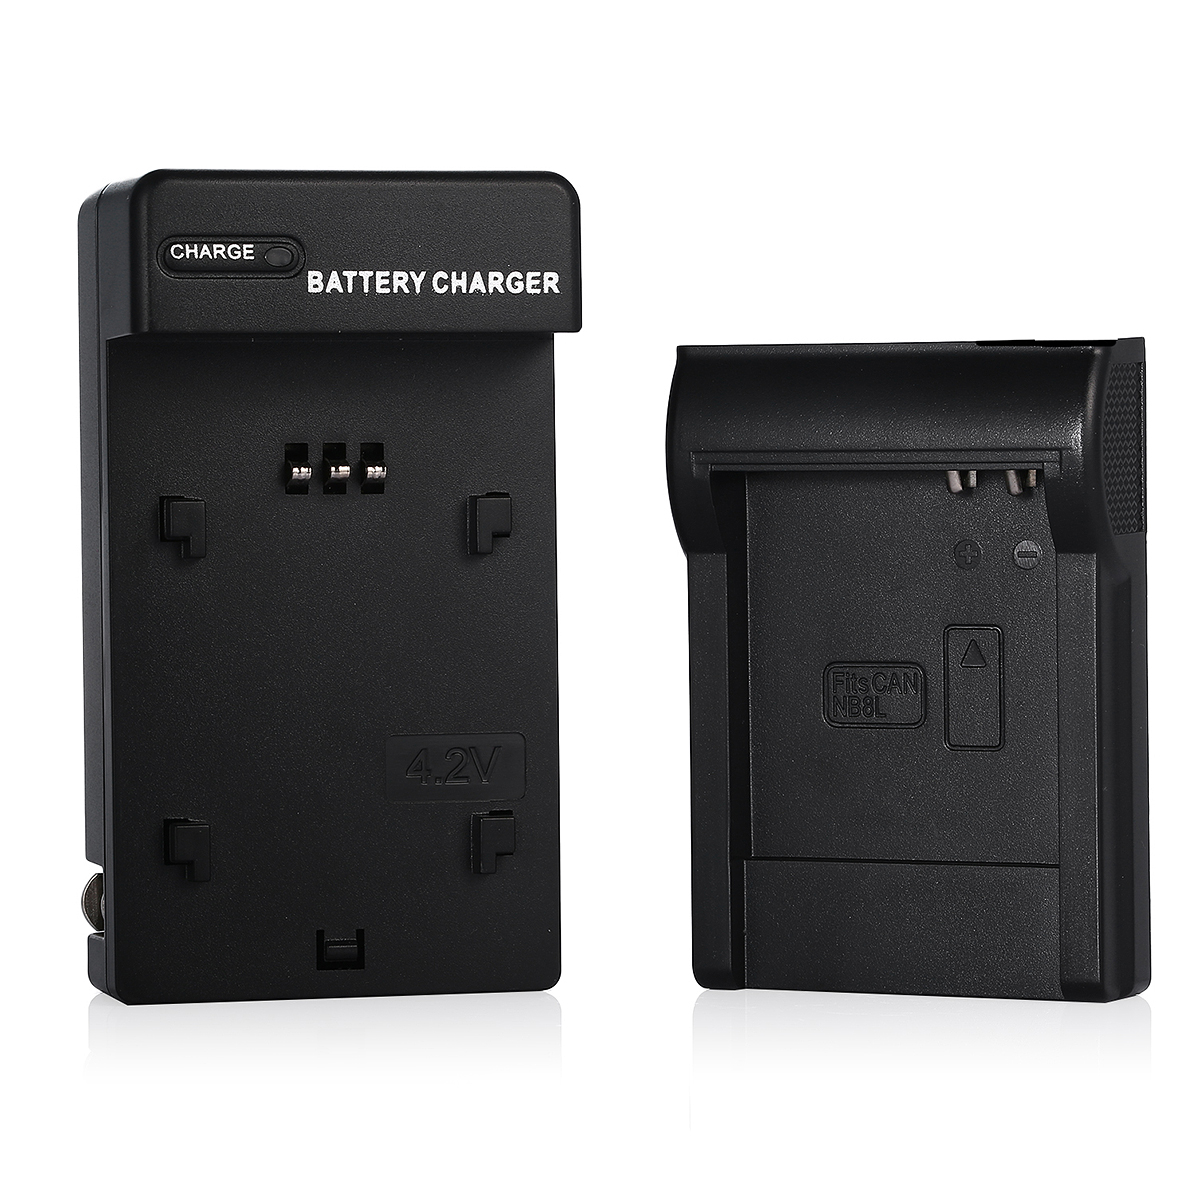 Nb 8l Nb8l Battery Charger For Canon Powershot A2200 A3000